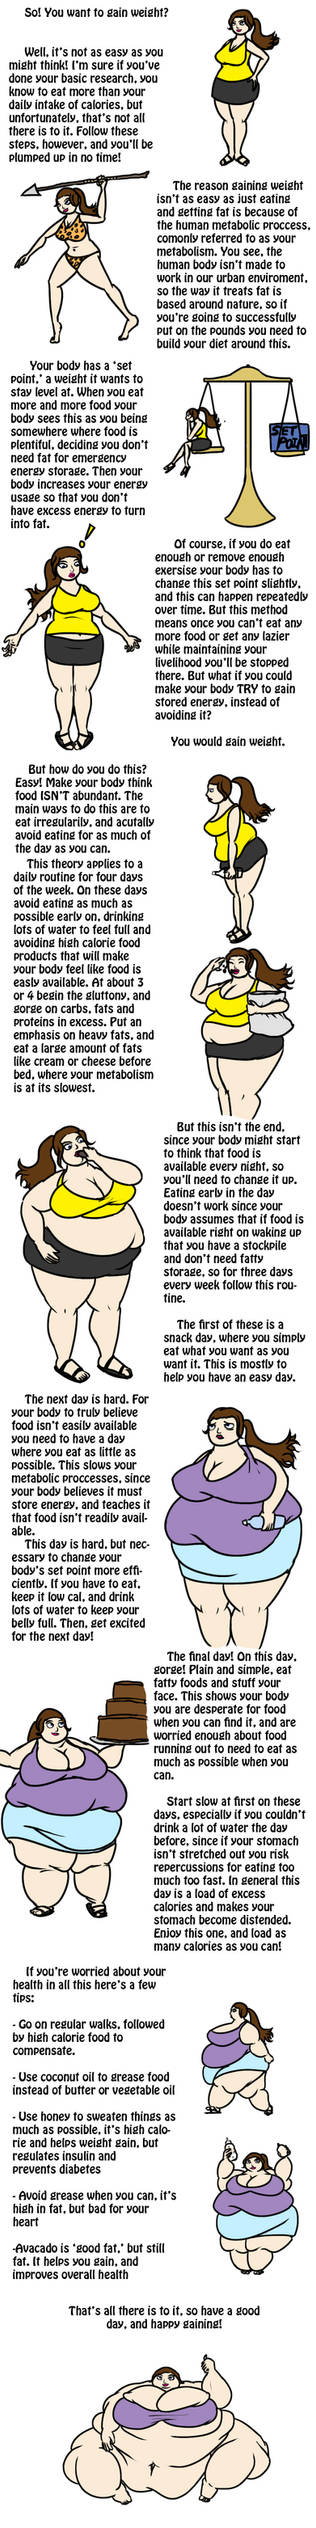 How to Gain Weight by ExtraBaggageClaim on DeviantArt